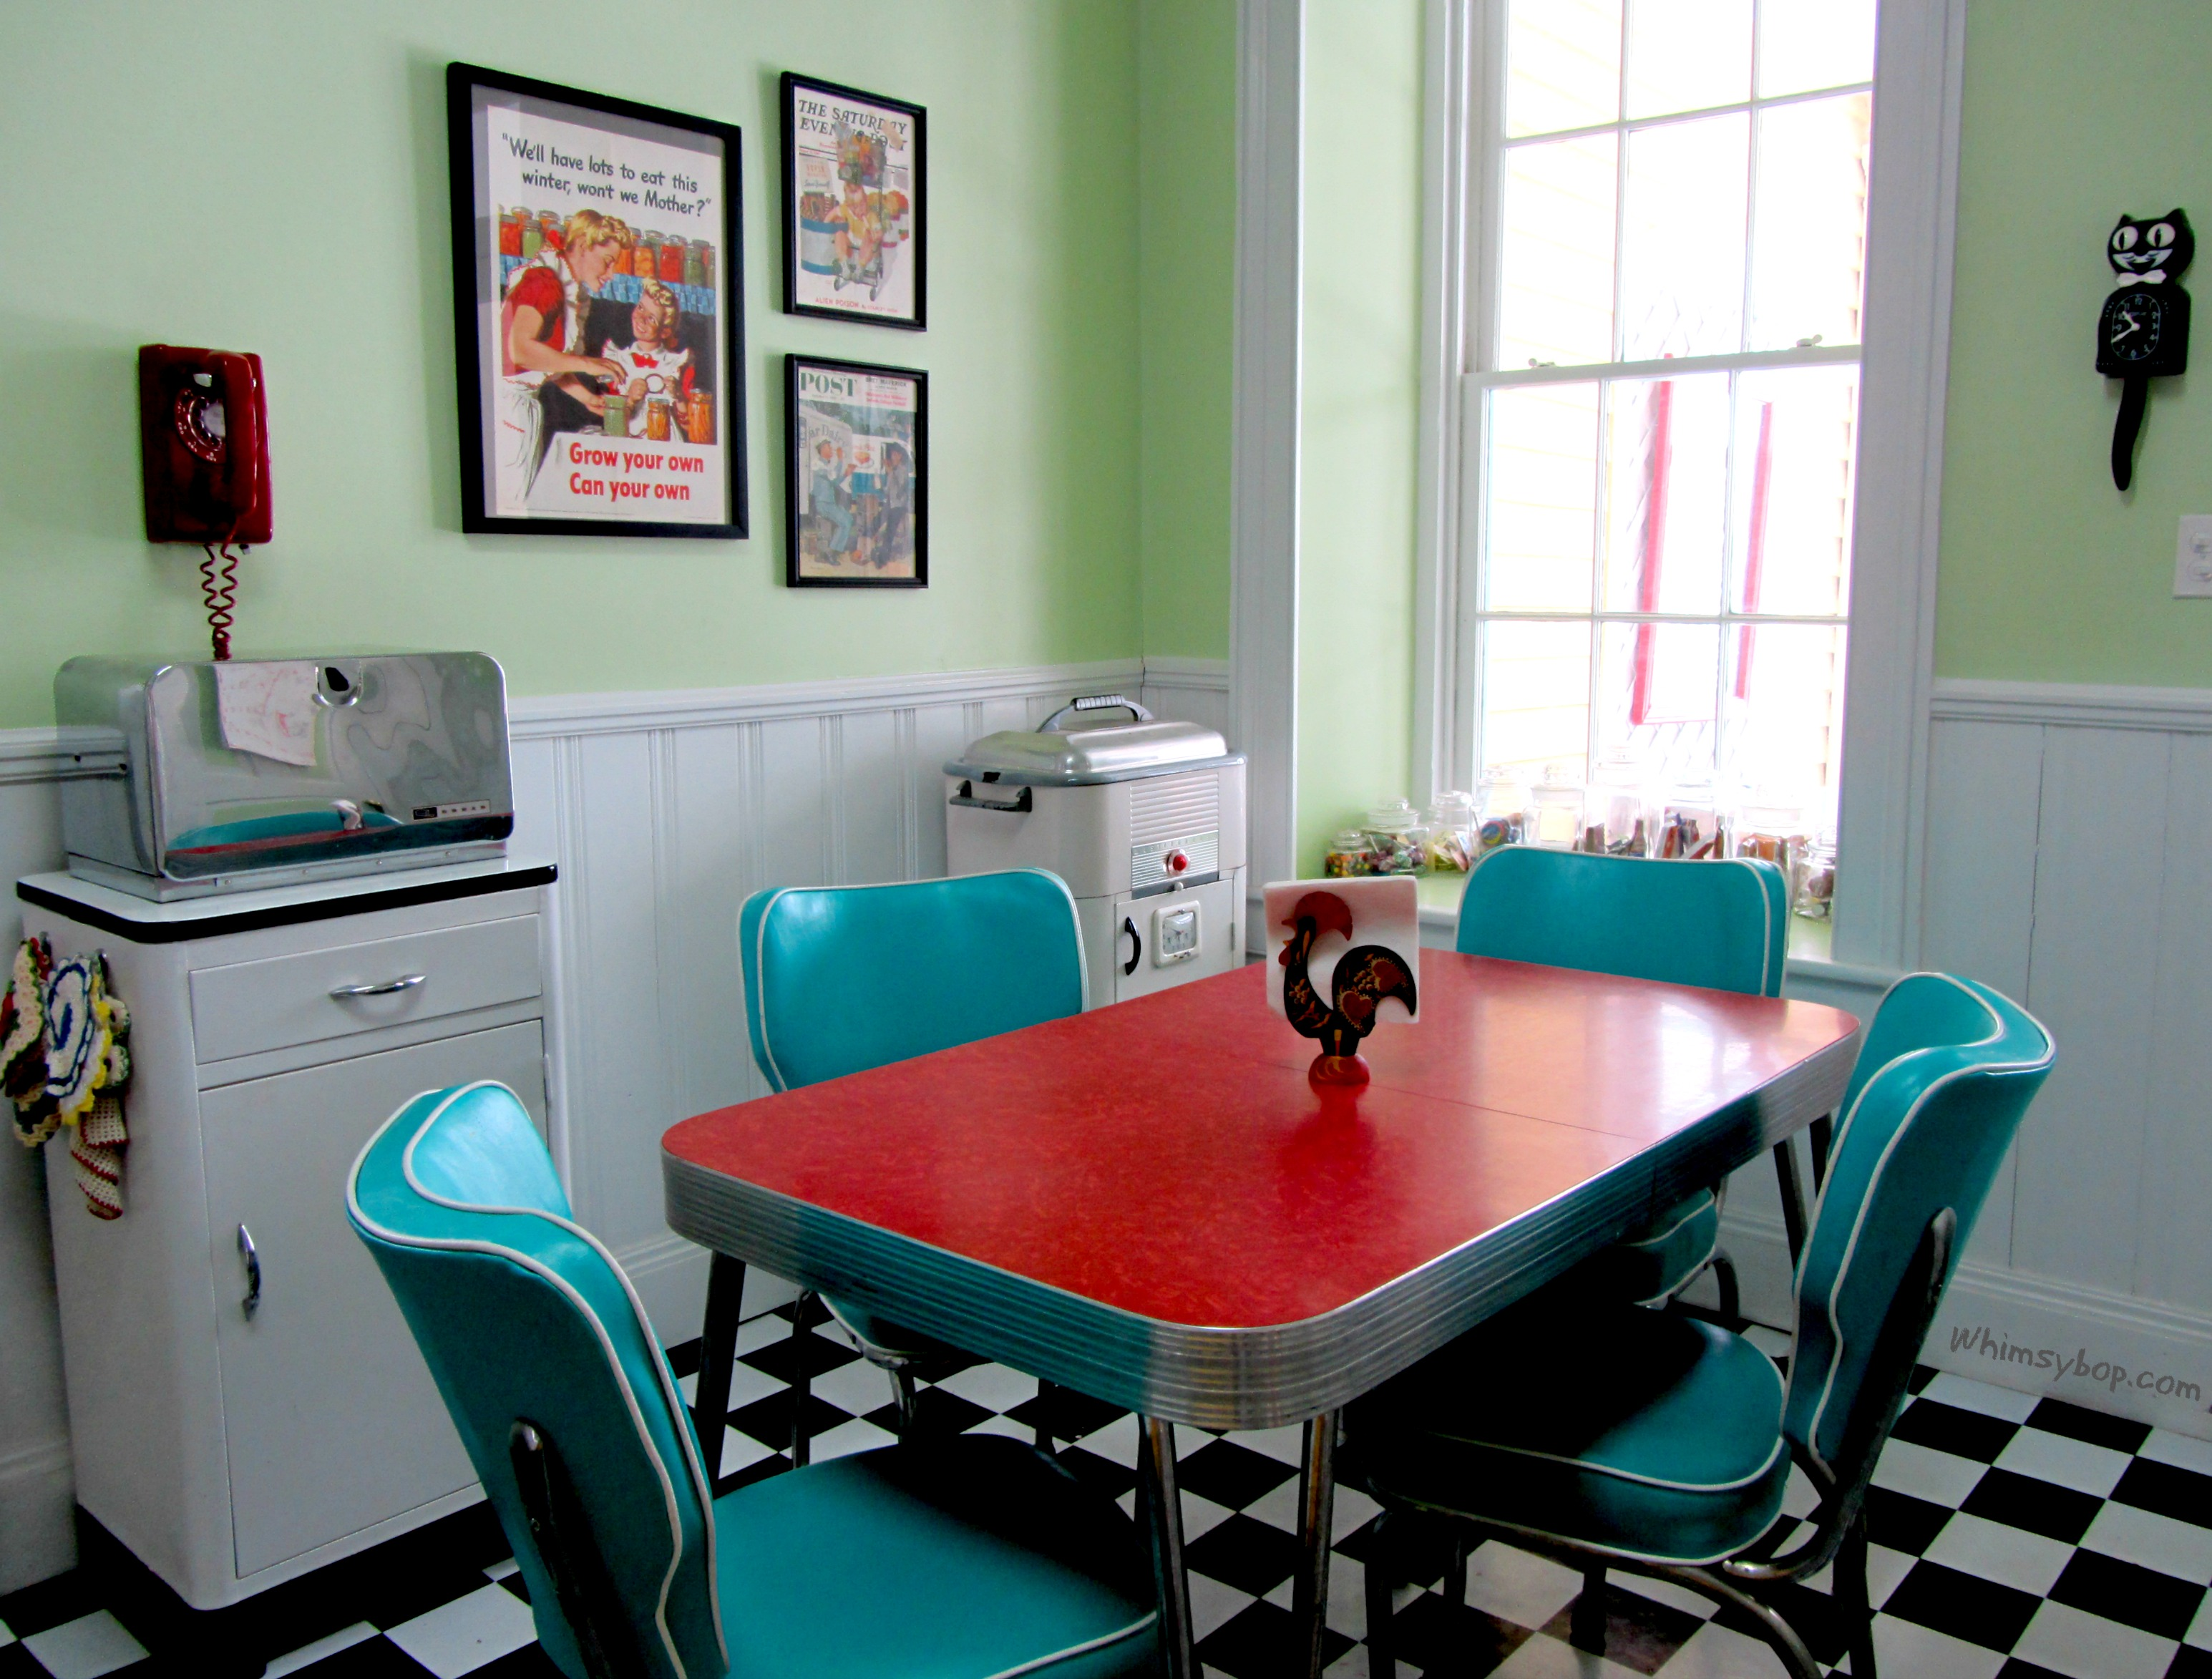 Thereu0027s Nothing Like A Bright Red Formica Table To Welcome Back Door  Friends Into My Kitchen. I Adore These Old Dinette Sets From Days Gone By  And Iu0027m Drawn ...